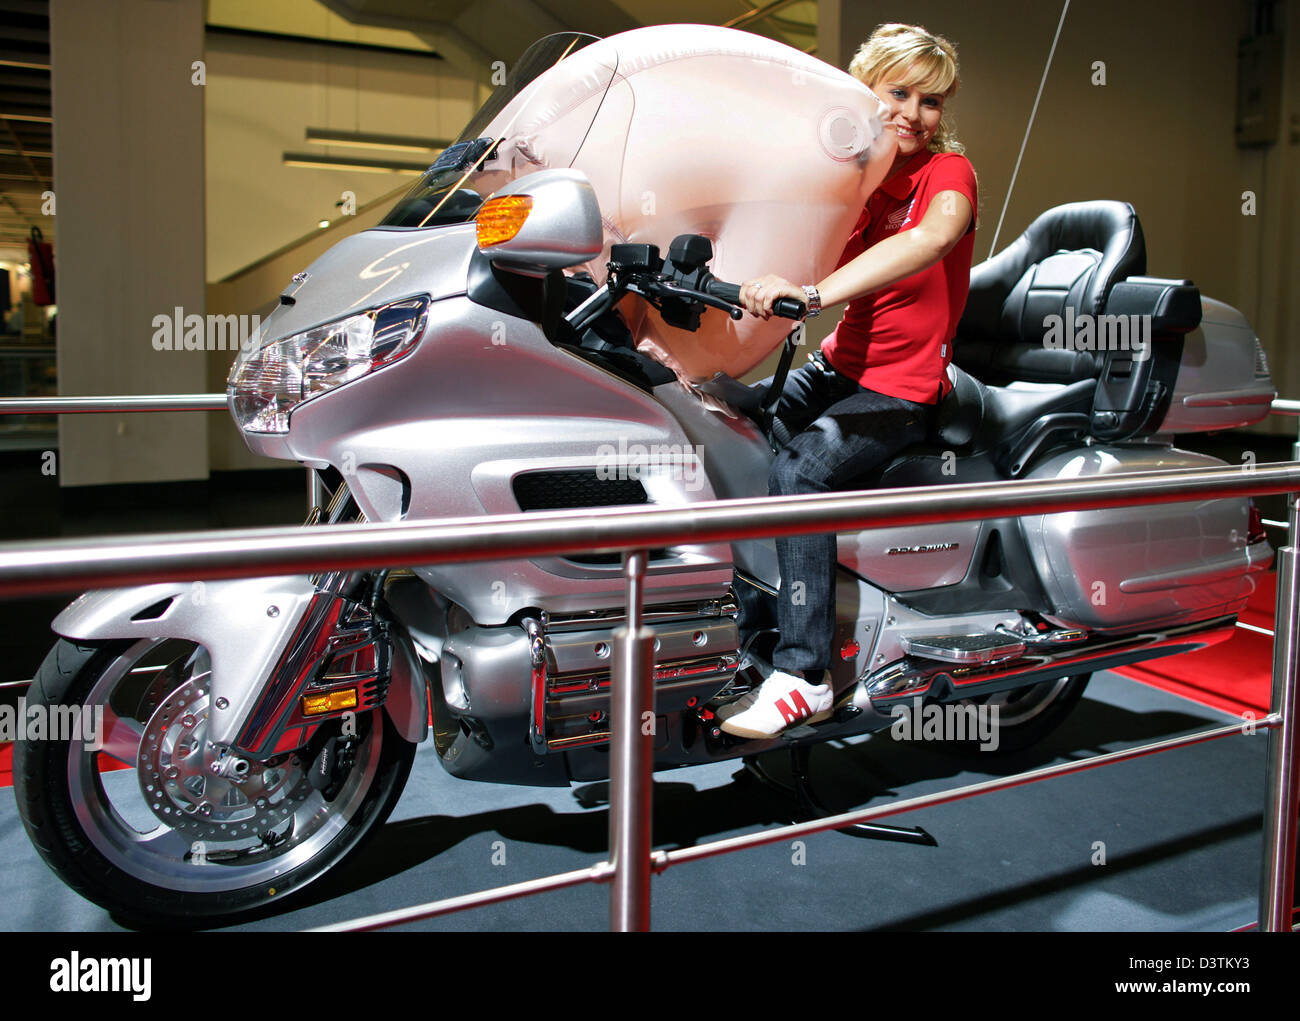 Page 2 Honda Goldwing Motorcycle High Resolution Stock Photography And Images Alamy